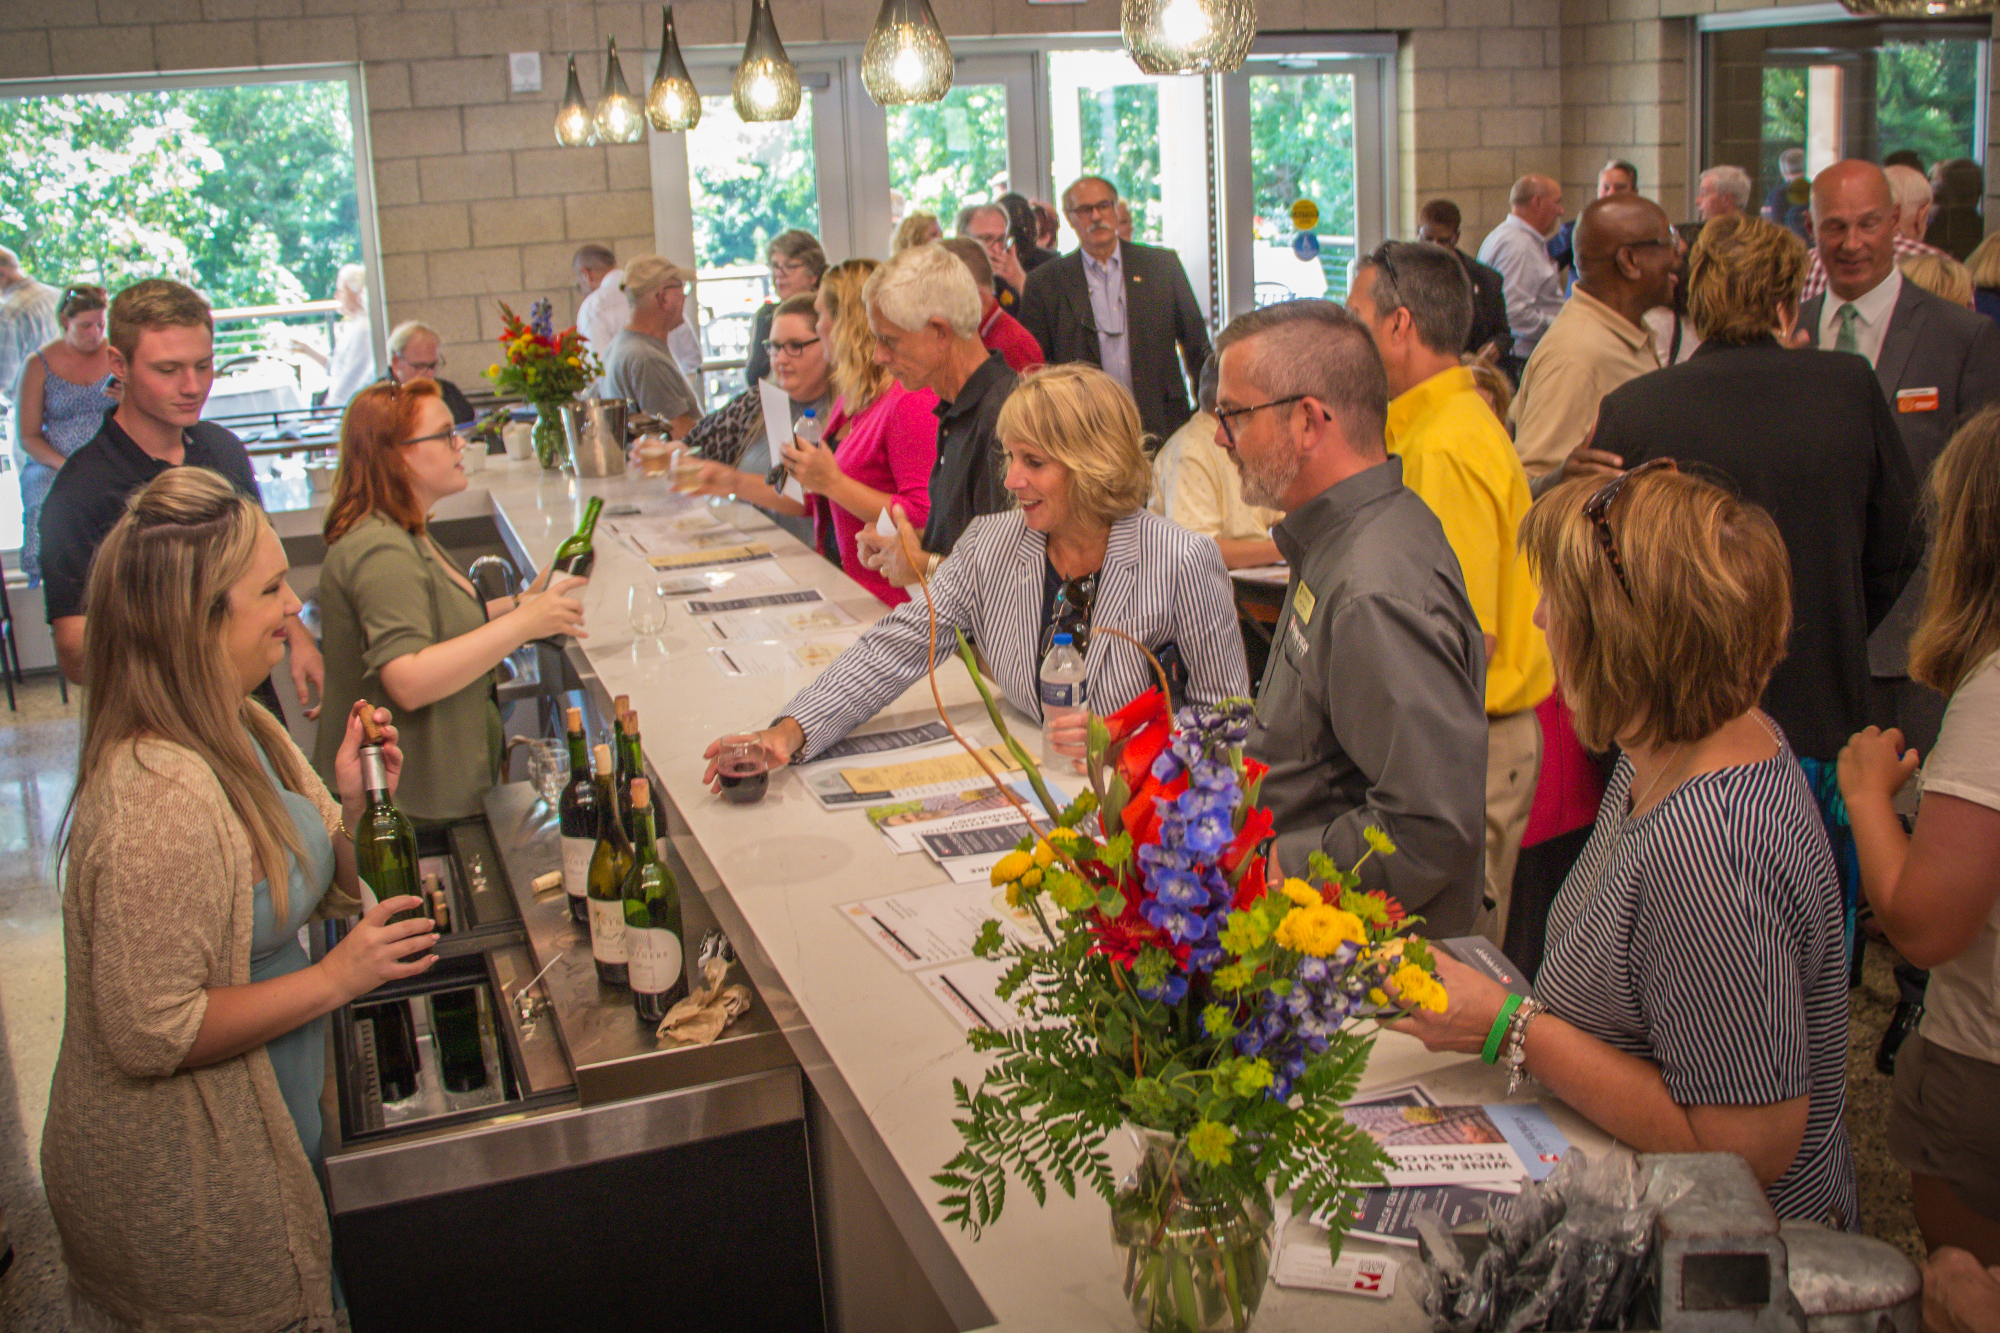 An image showing approximately 30 people at the opening for the Welch Center for Wine & Viticulture Technology. Two people are pouring wine for guests, and there is a vibrant buoquet of flowers on the bar top.